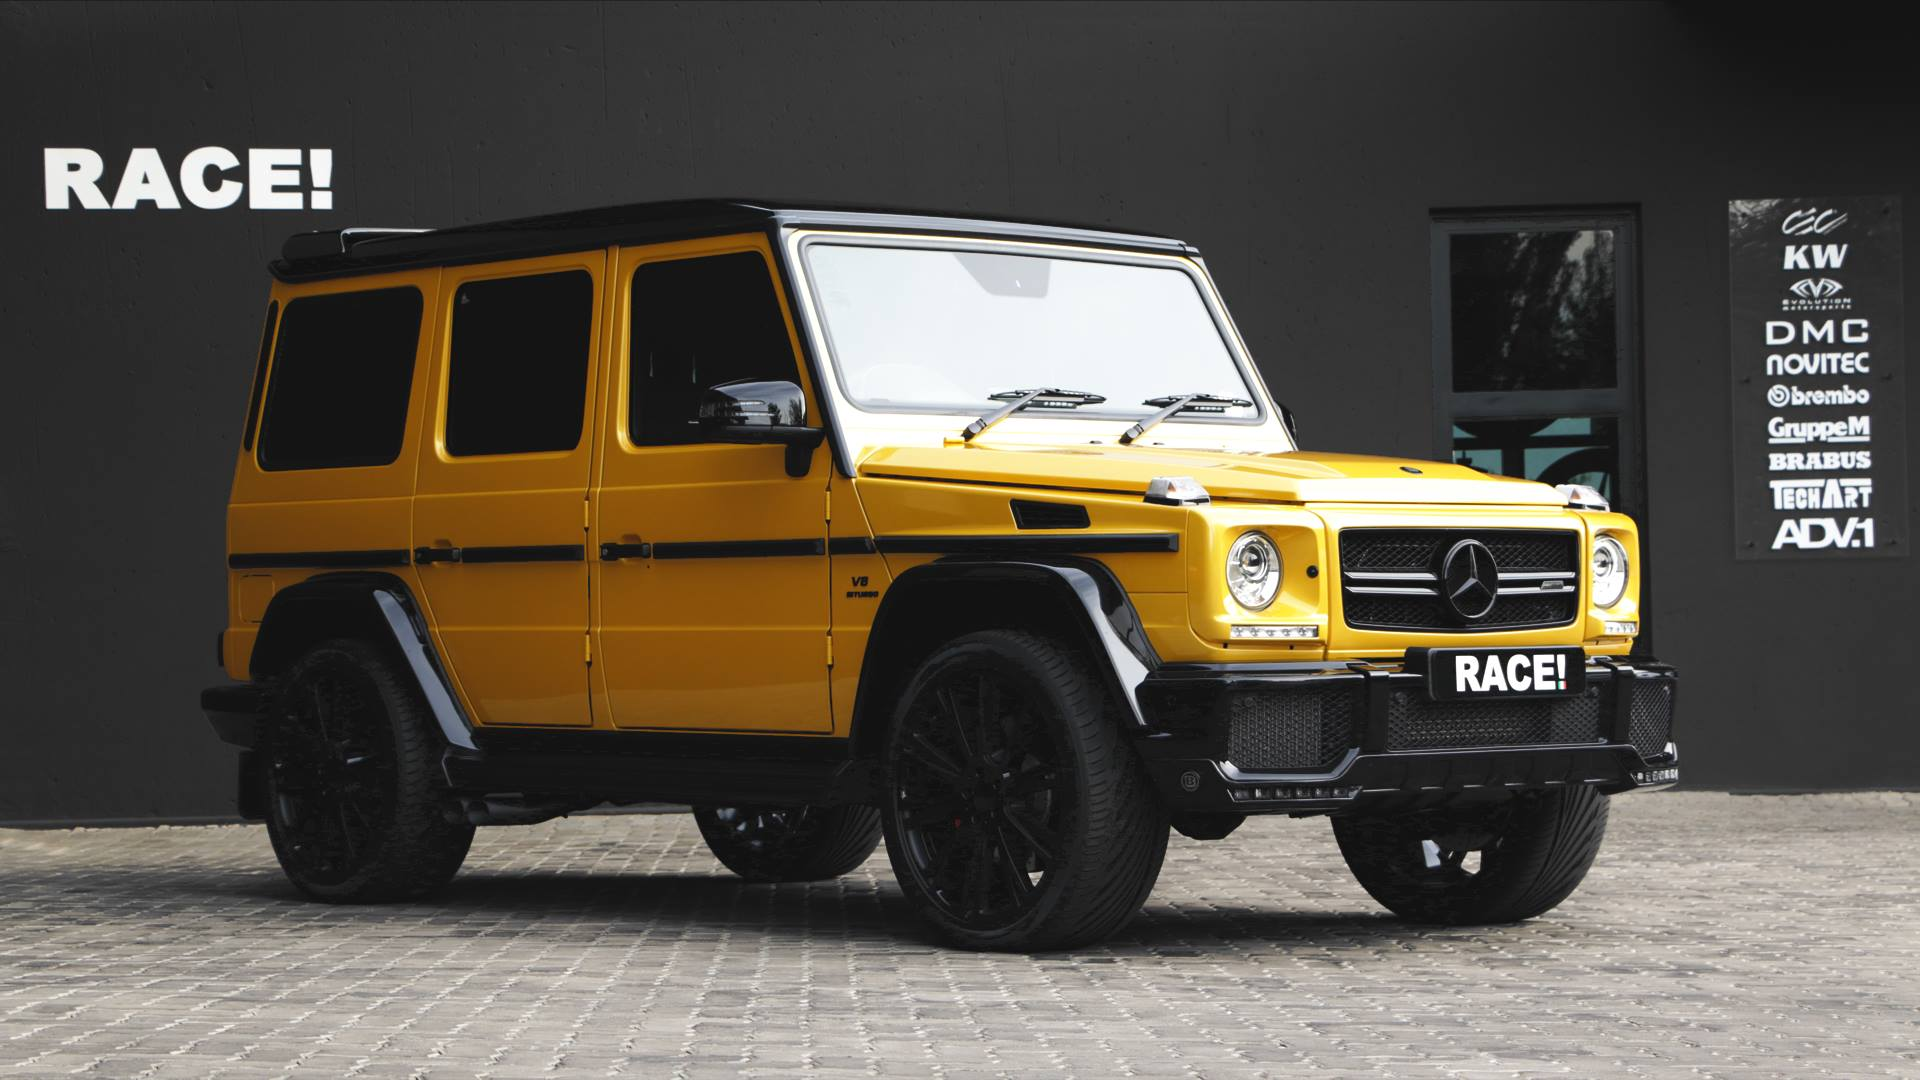 G Wagon Brabus 2016 >> Crazy Color Yellow G63 AMG with Brabus Parts by RACE! - autoevolution